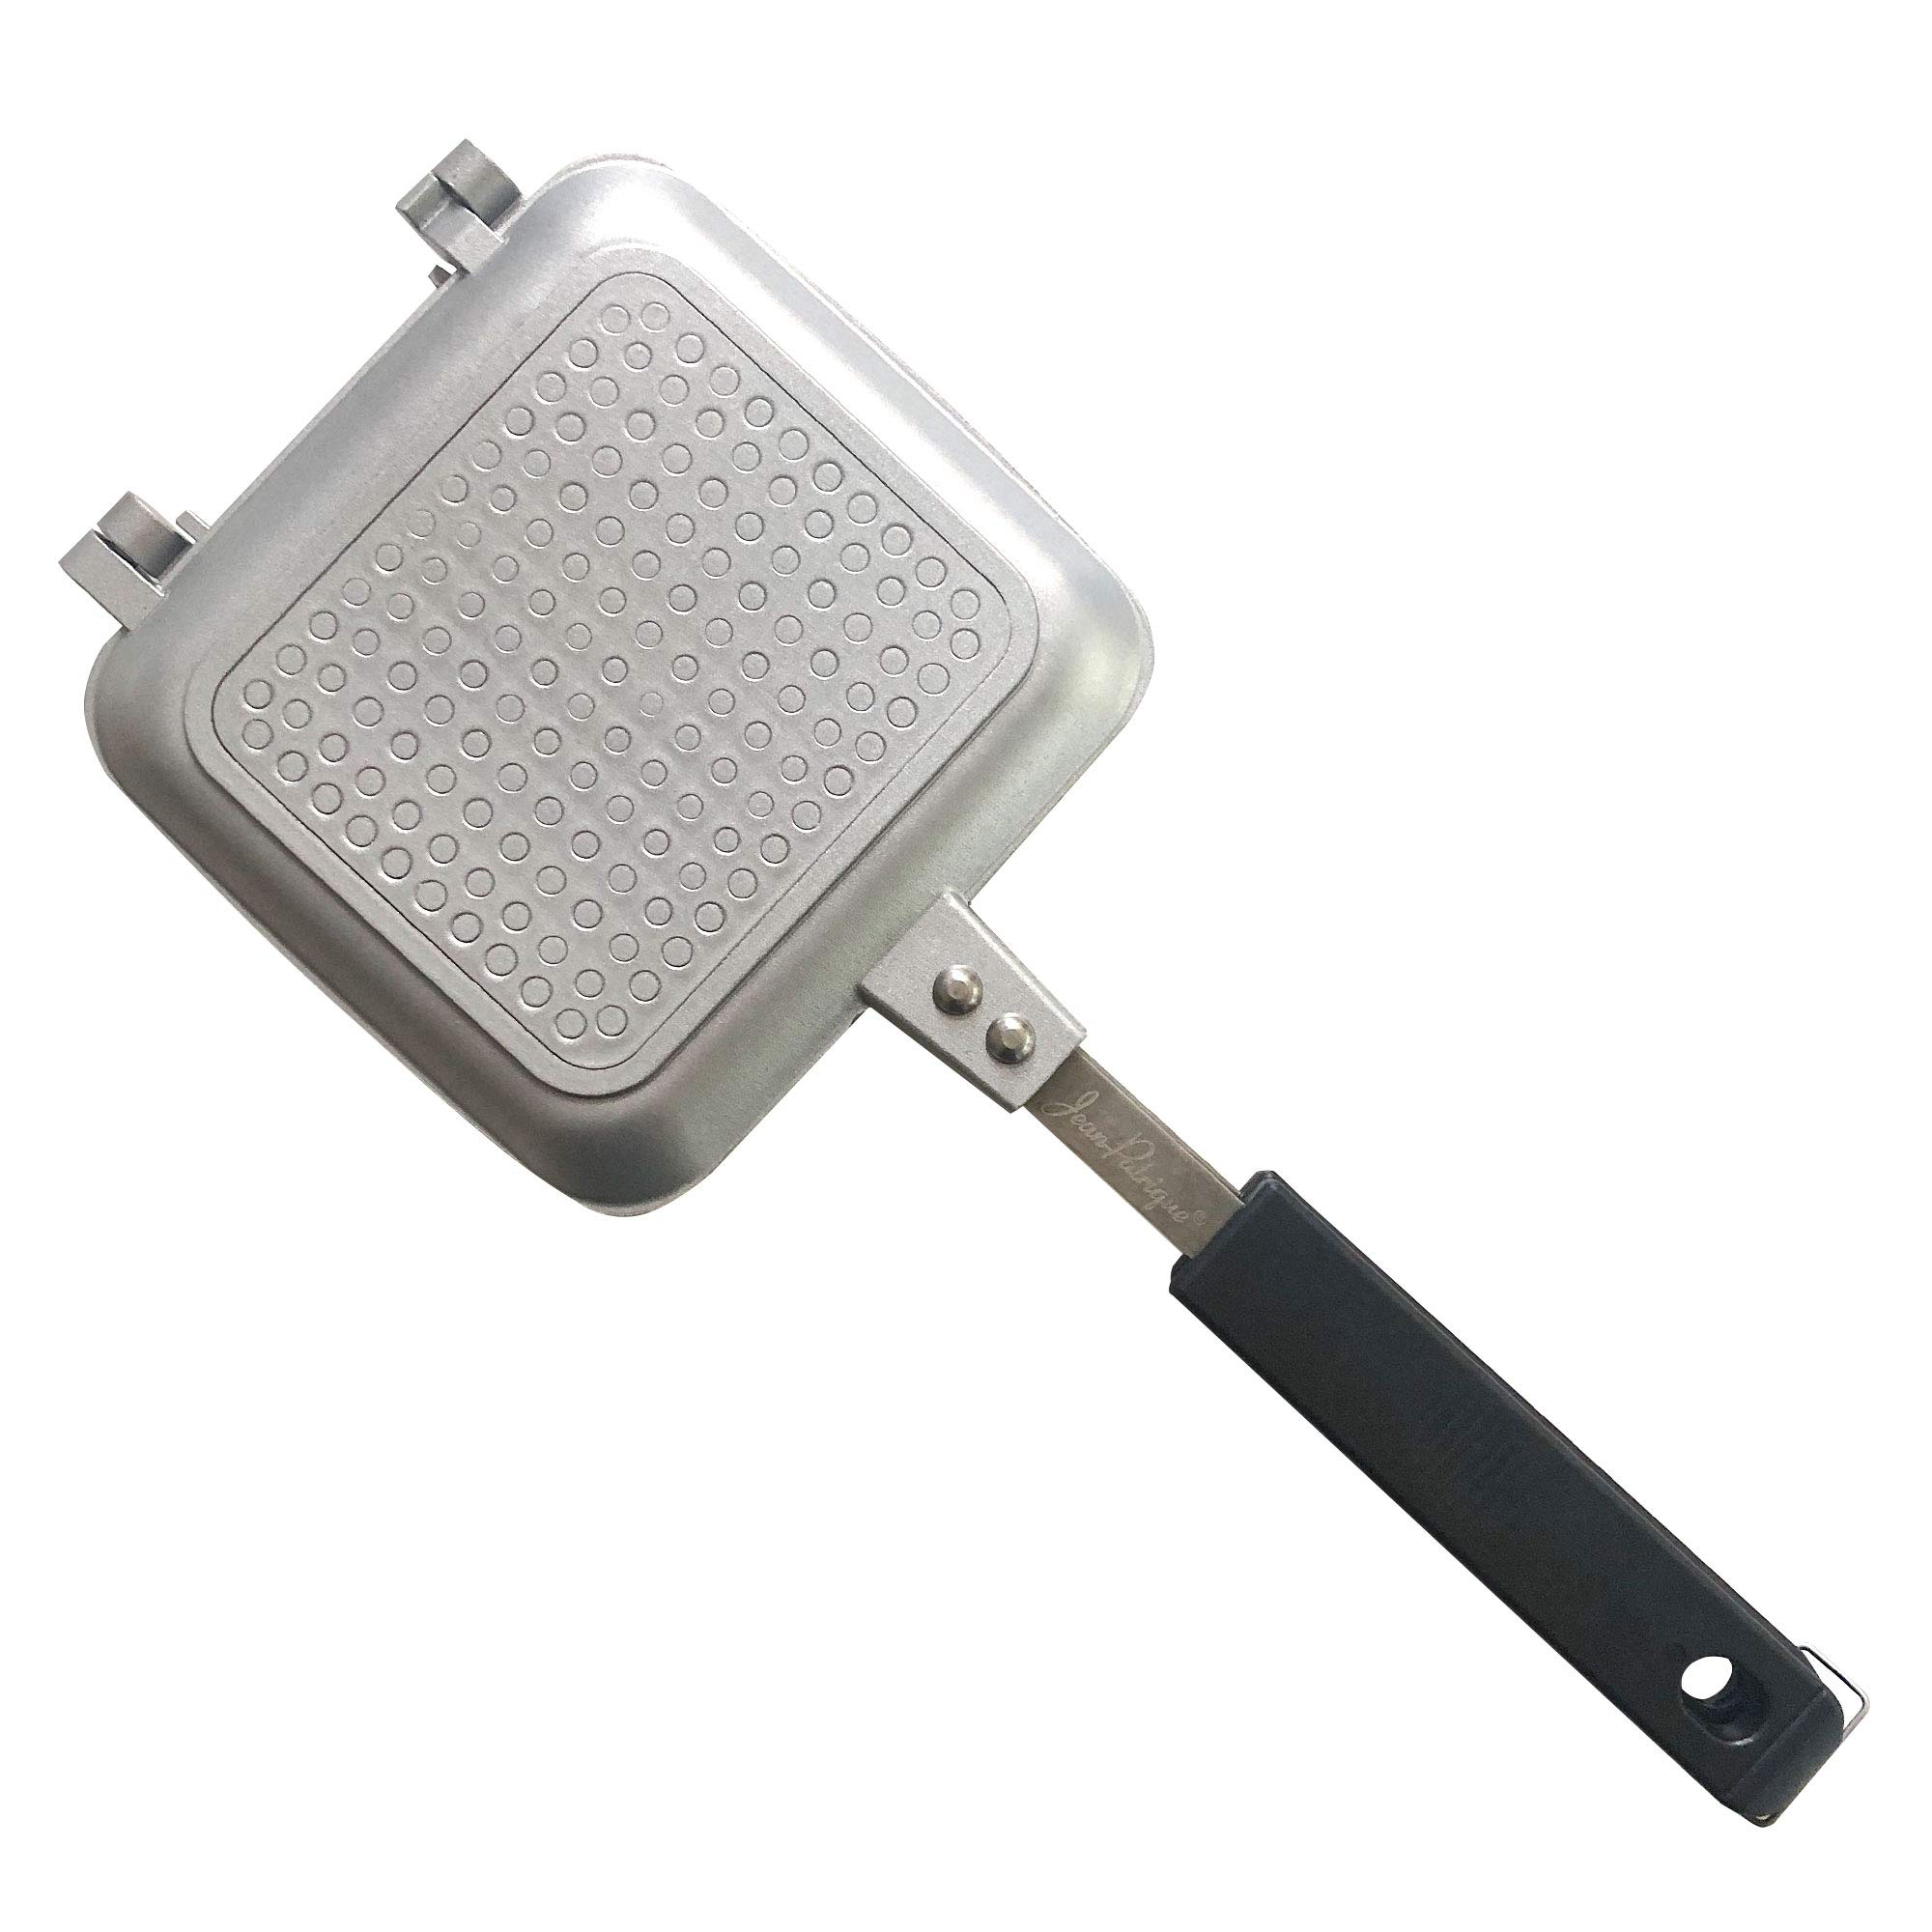 Jean-Patrique Toasted Sandwich Maker Non-Stick Technology Ideal for Outdoors - Silver by Jean-Patrique